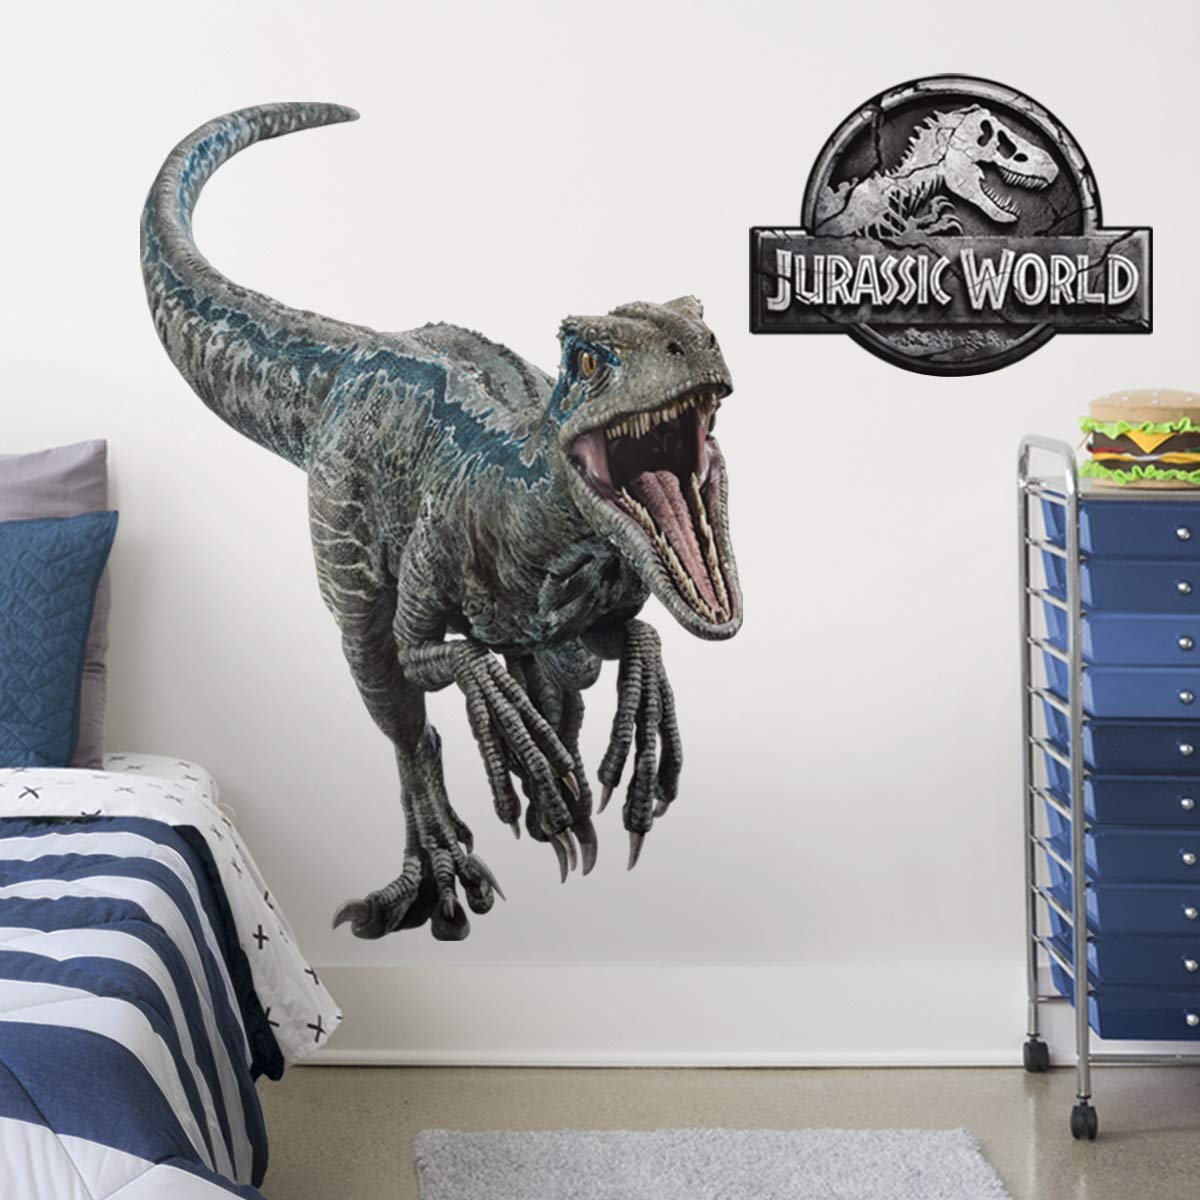 FATHEAD Jurassic World Velociraptor Blue Life-Size Peel and Stick Vinyl Wall Decal